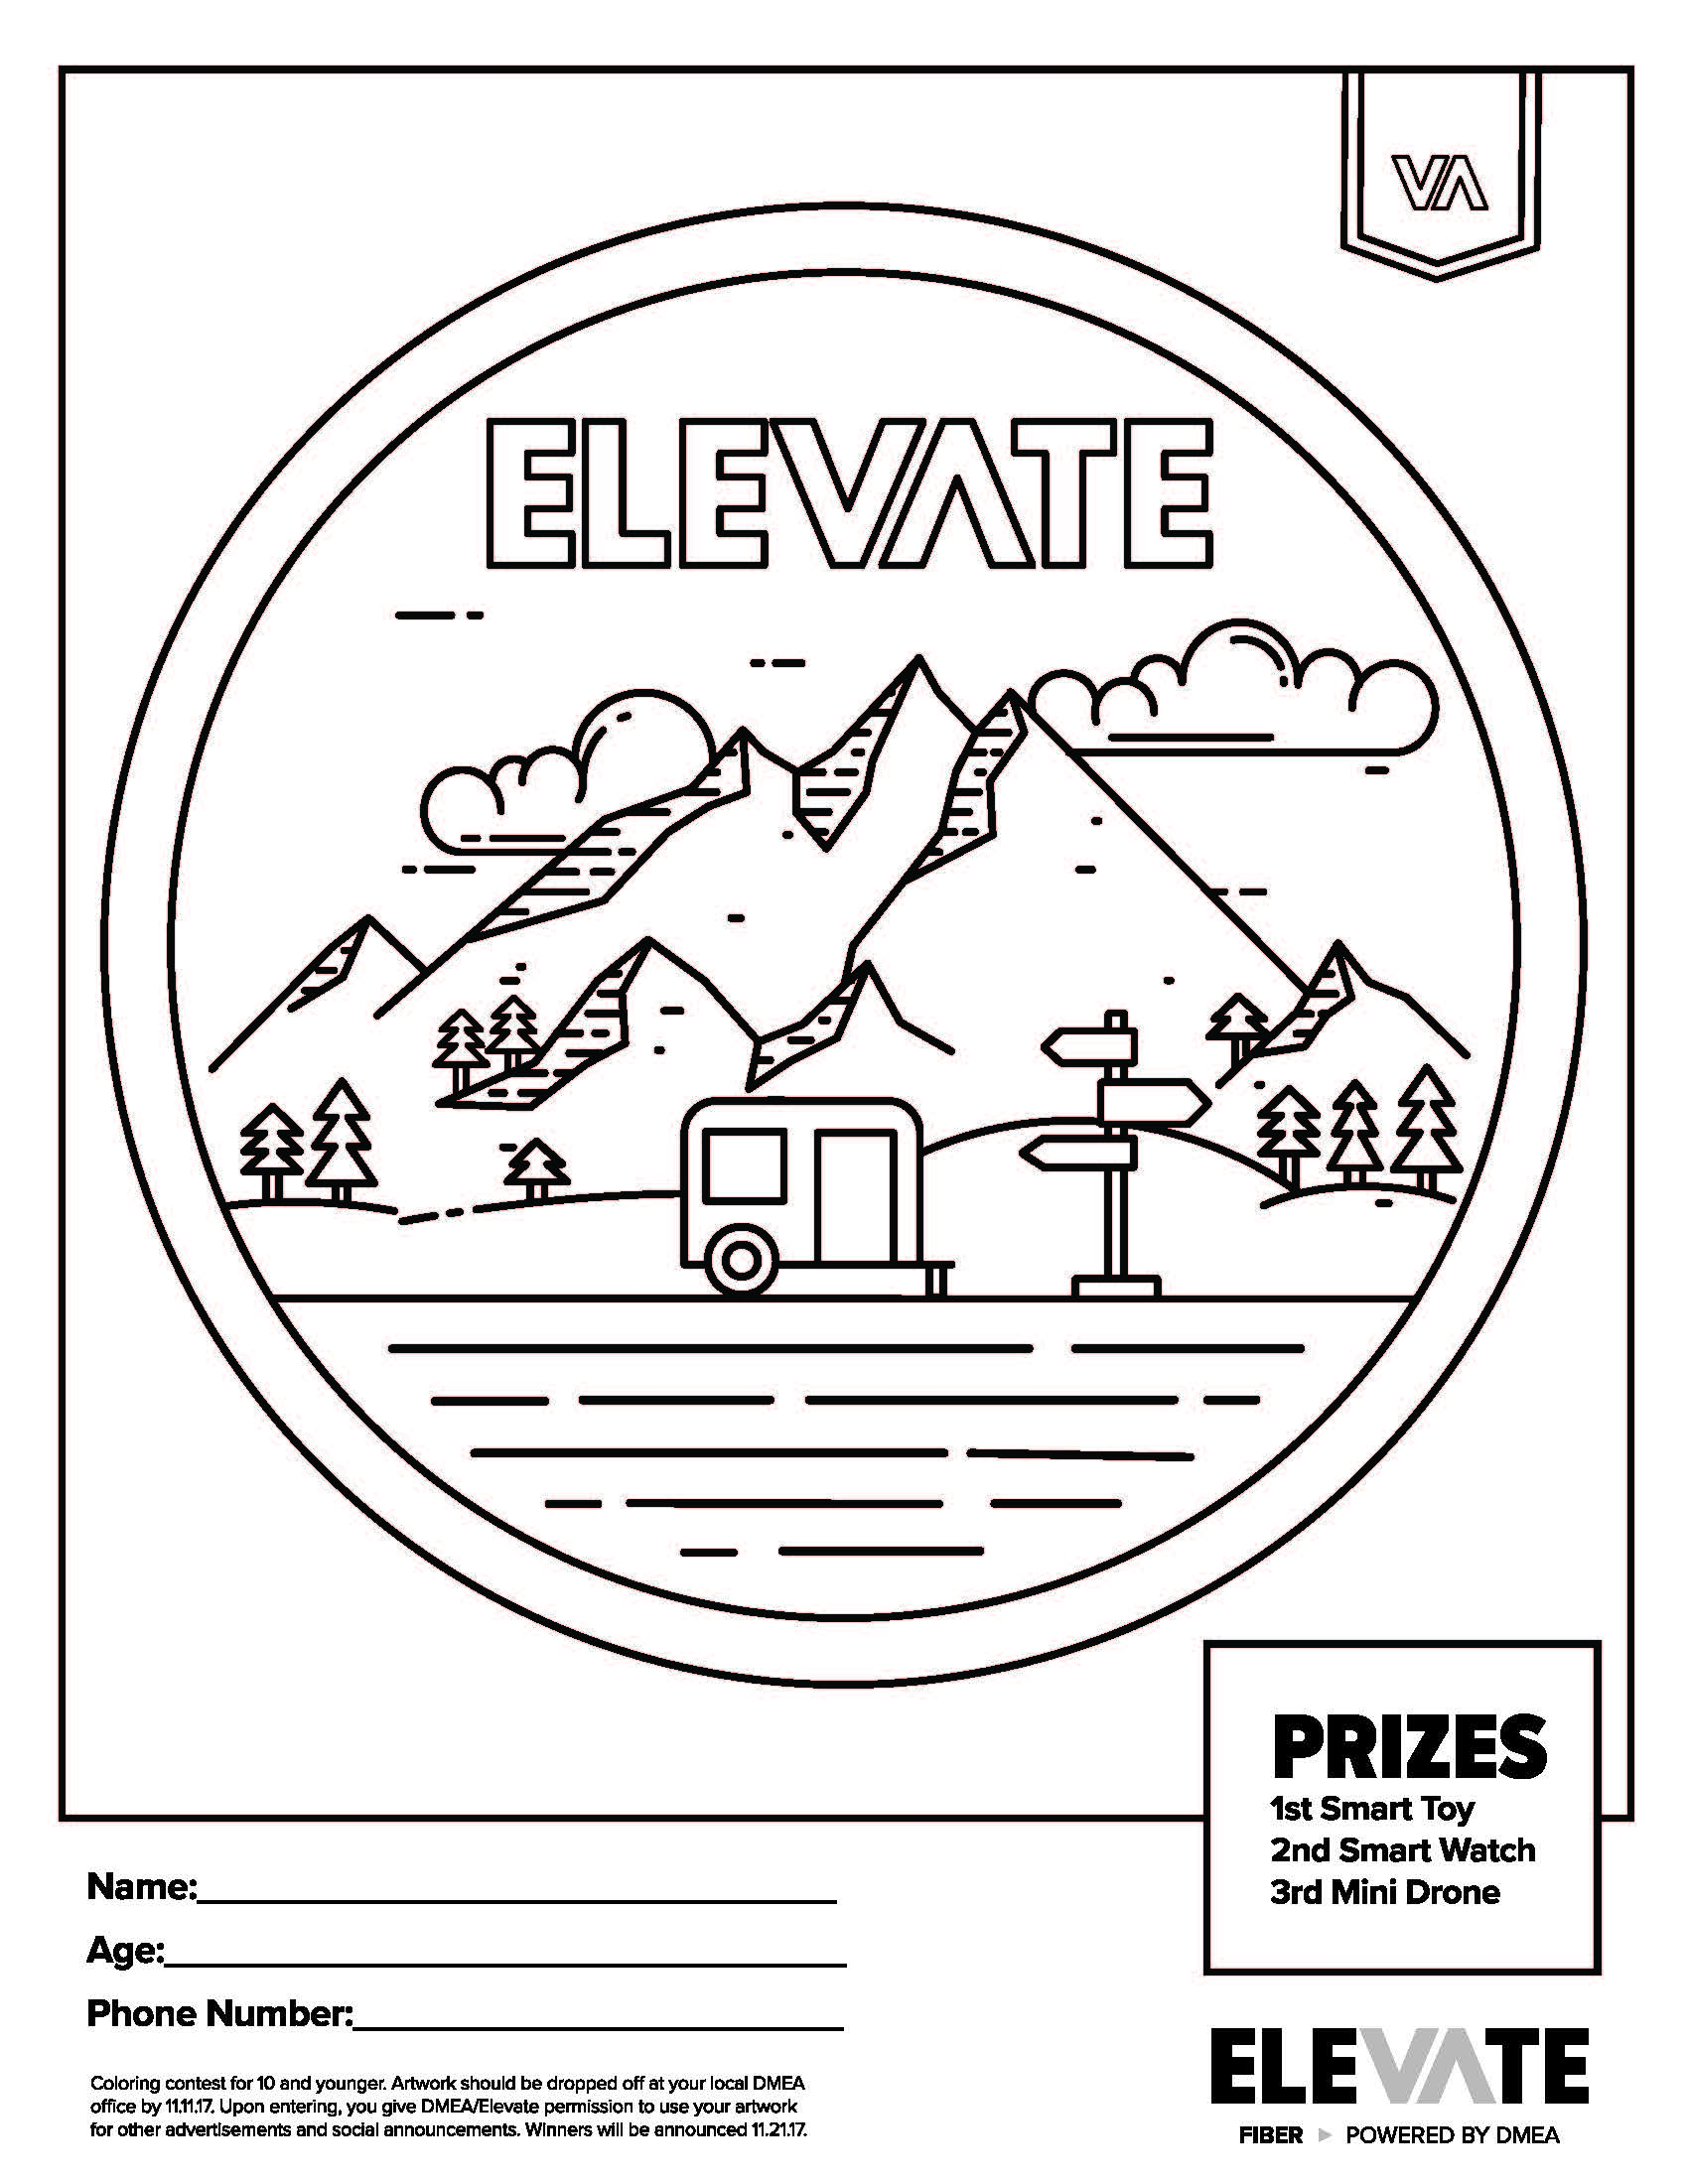 Famous Wired 96 5 Contests Gift - Electrical Diagram Ideas ...